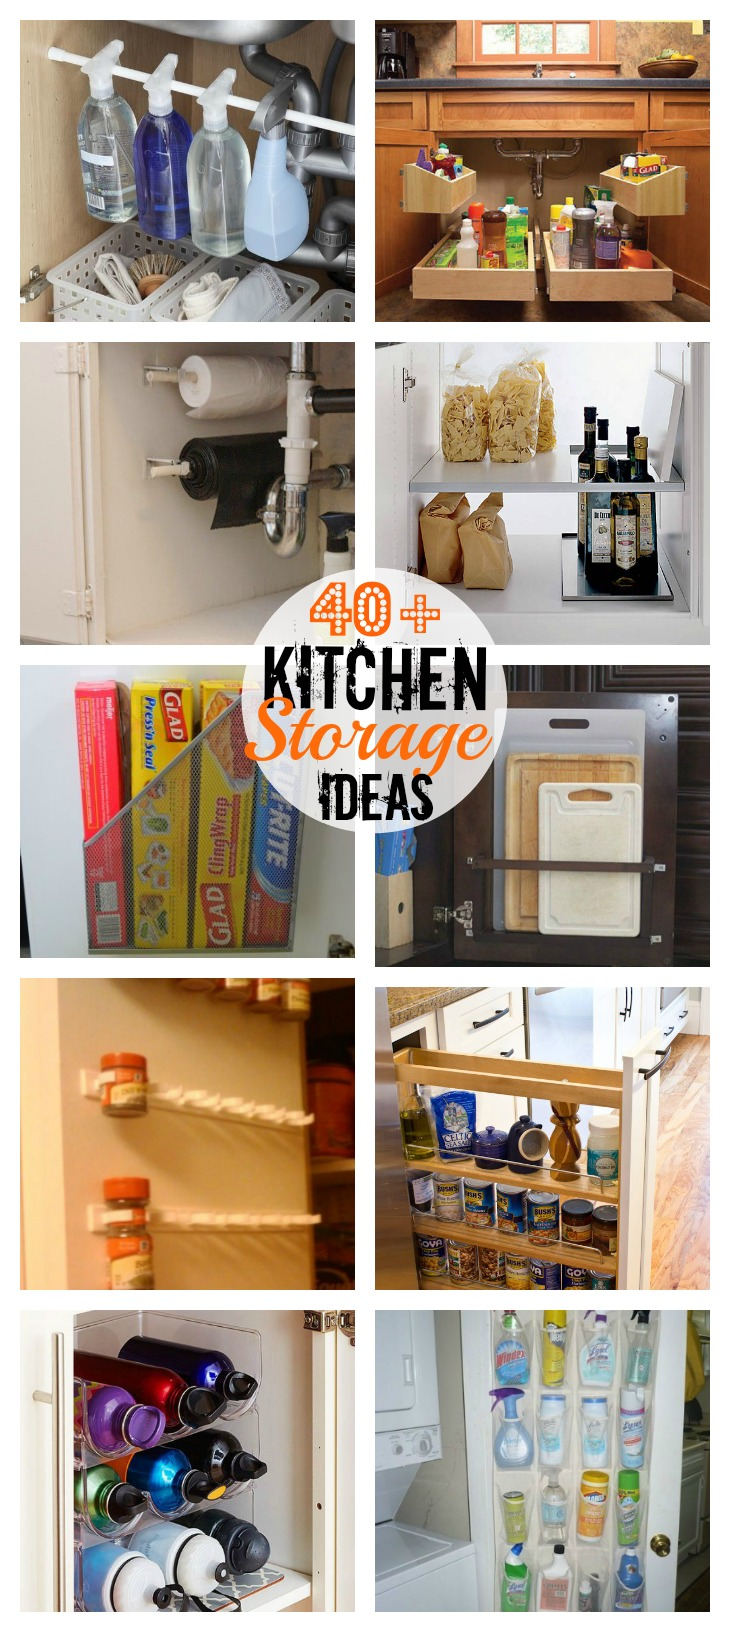 Great Kitchen Storage 40 Great Kitchen Storage Ideas Every Woman Should Know